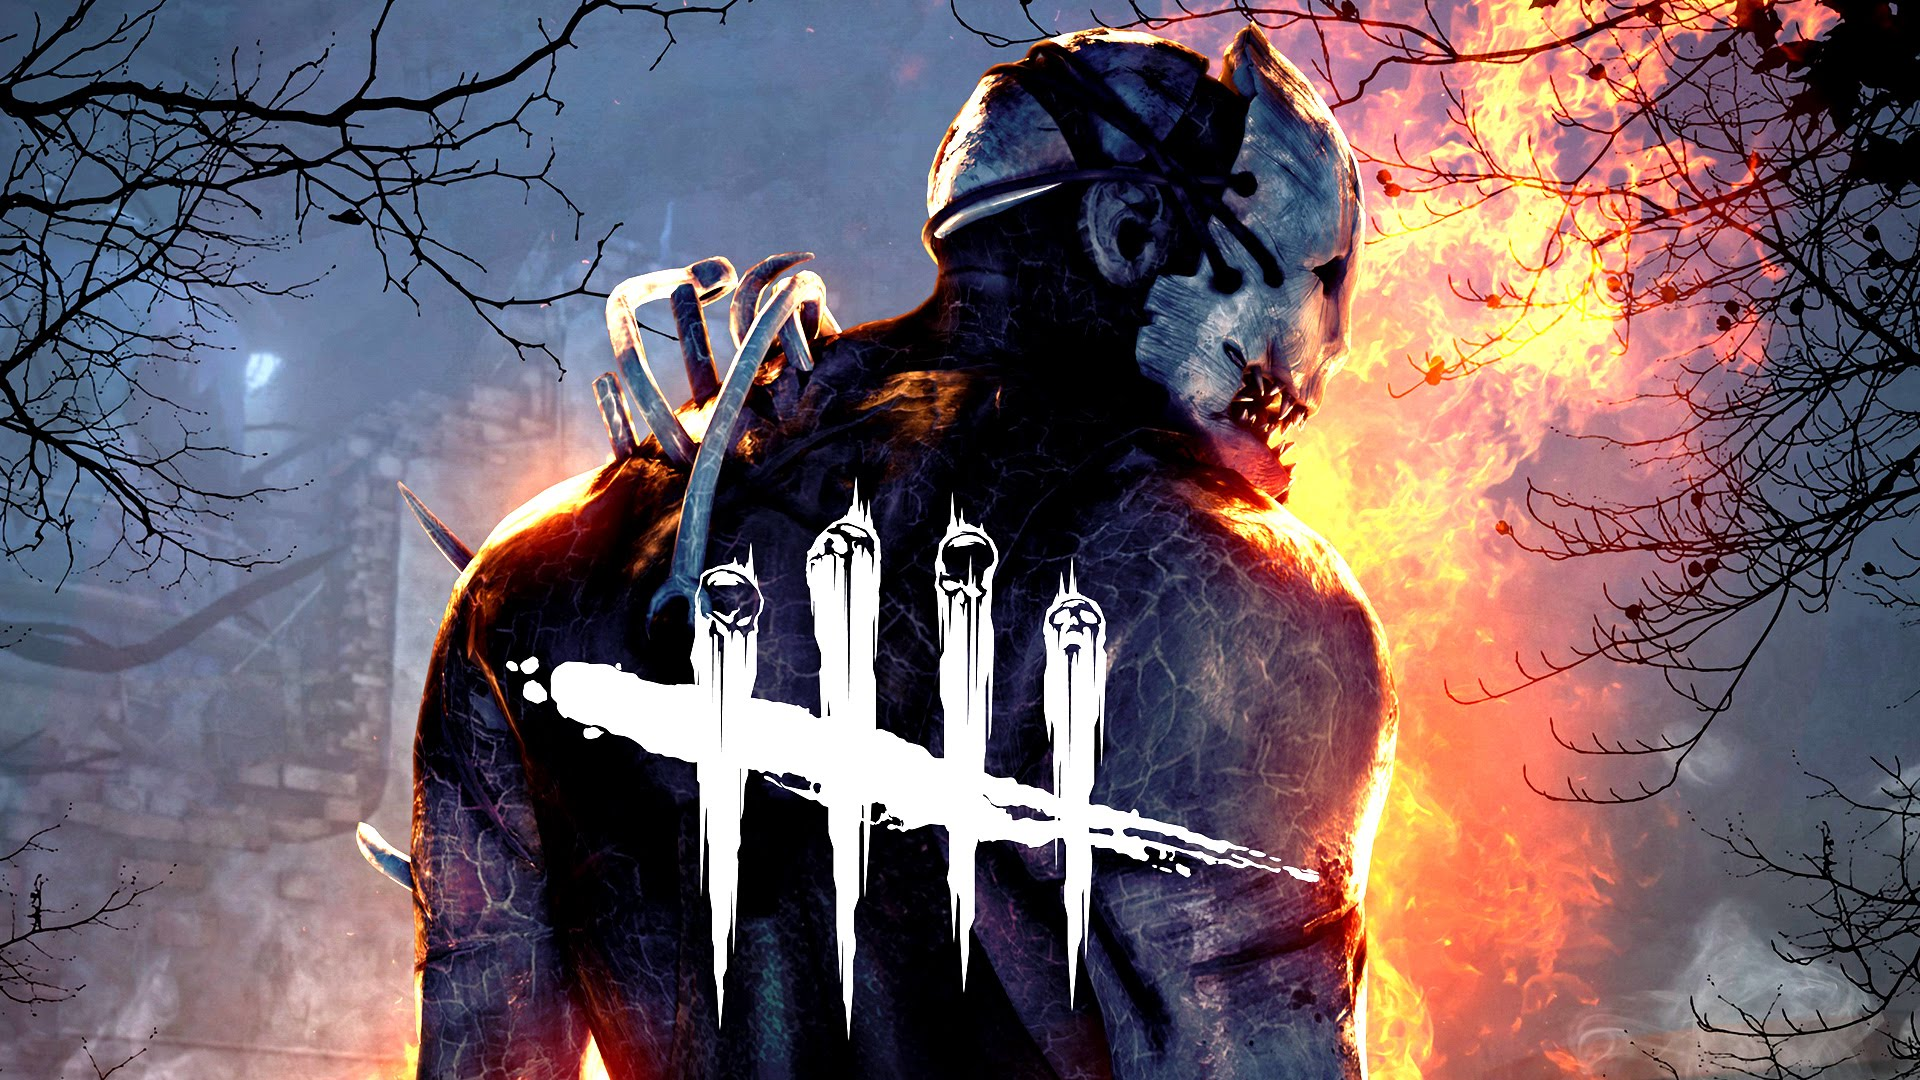 Dead By Daylight On Pc Is Getting A Free Dlc Chapter Today